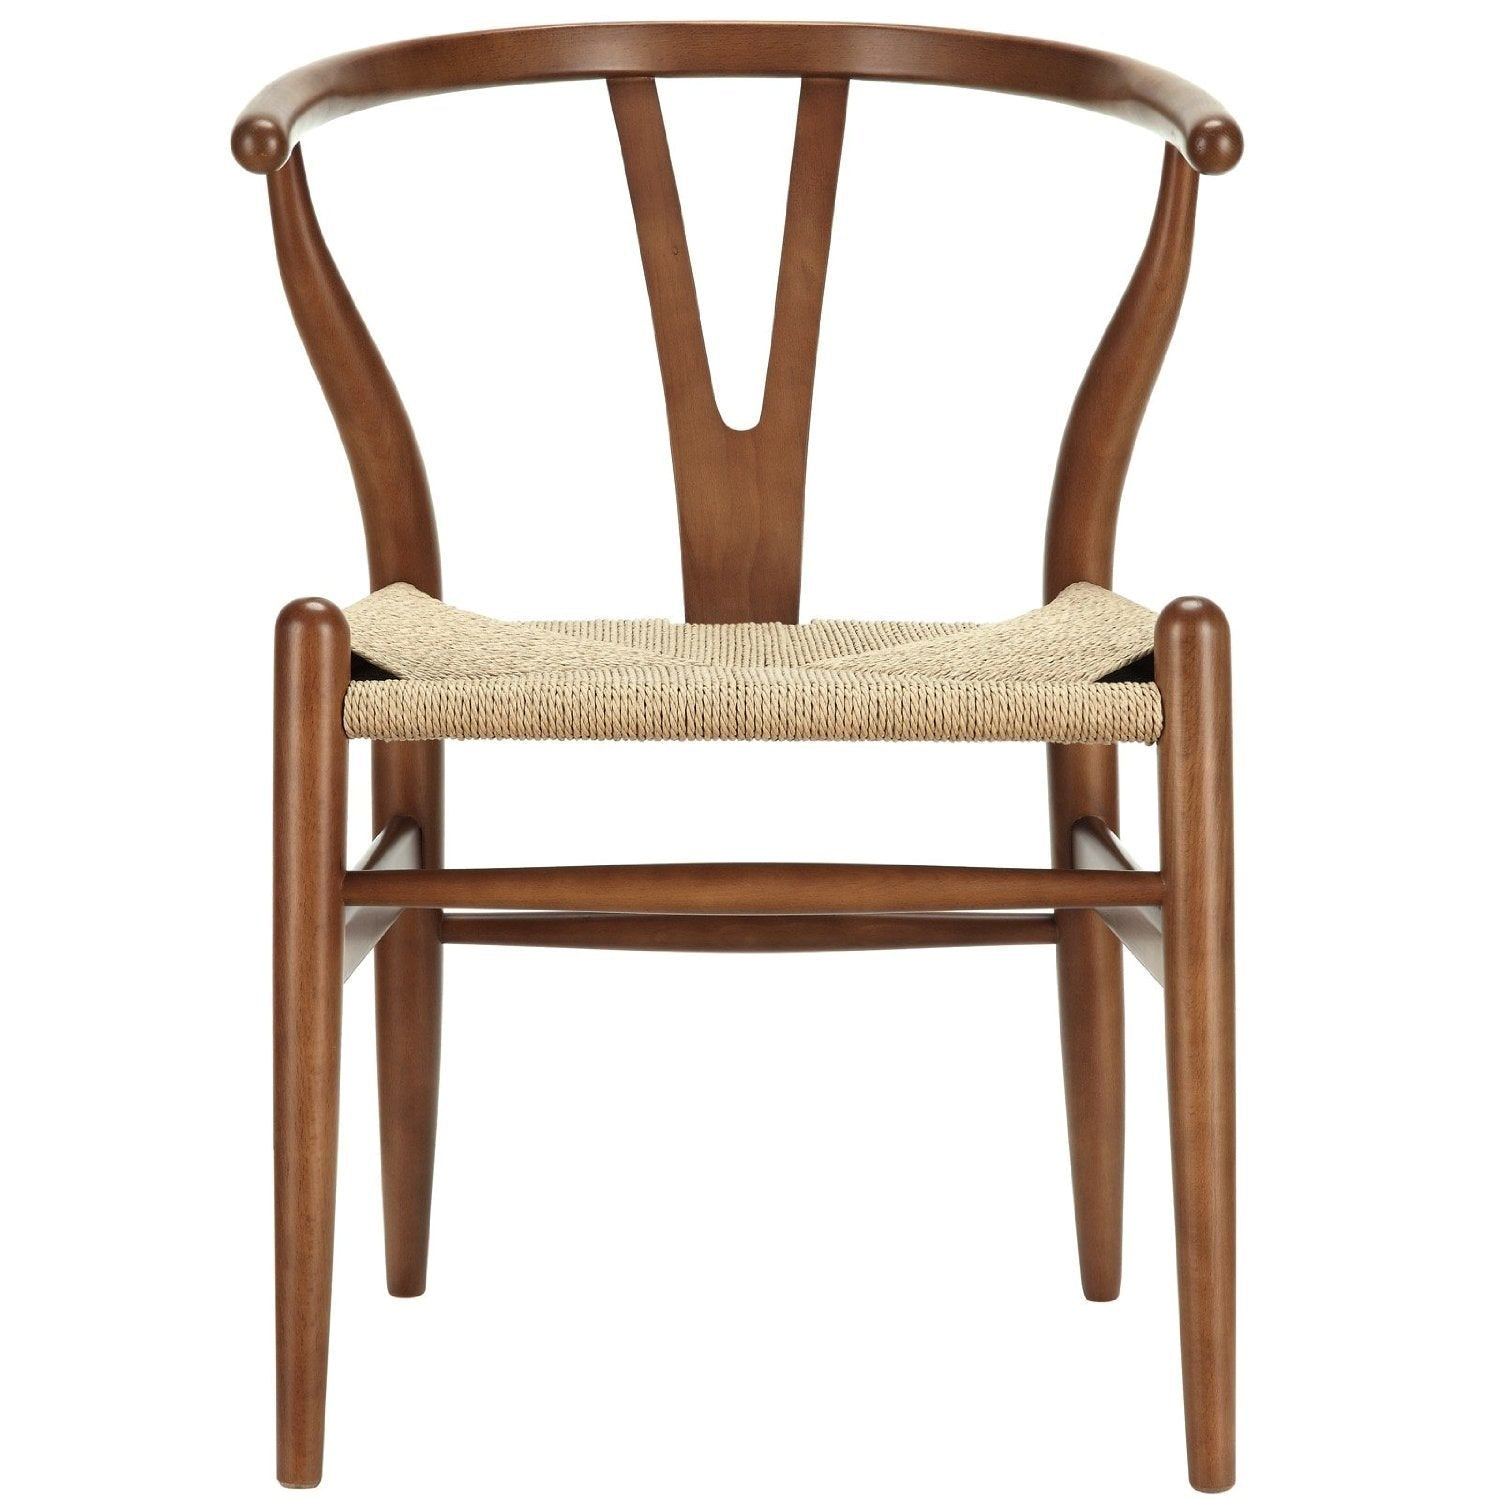 Solid ash wood and  Natural Cord Seat WS-001A-W